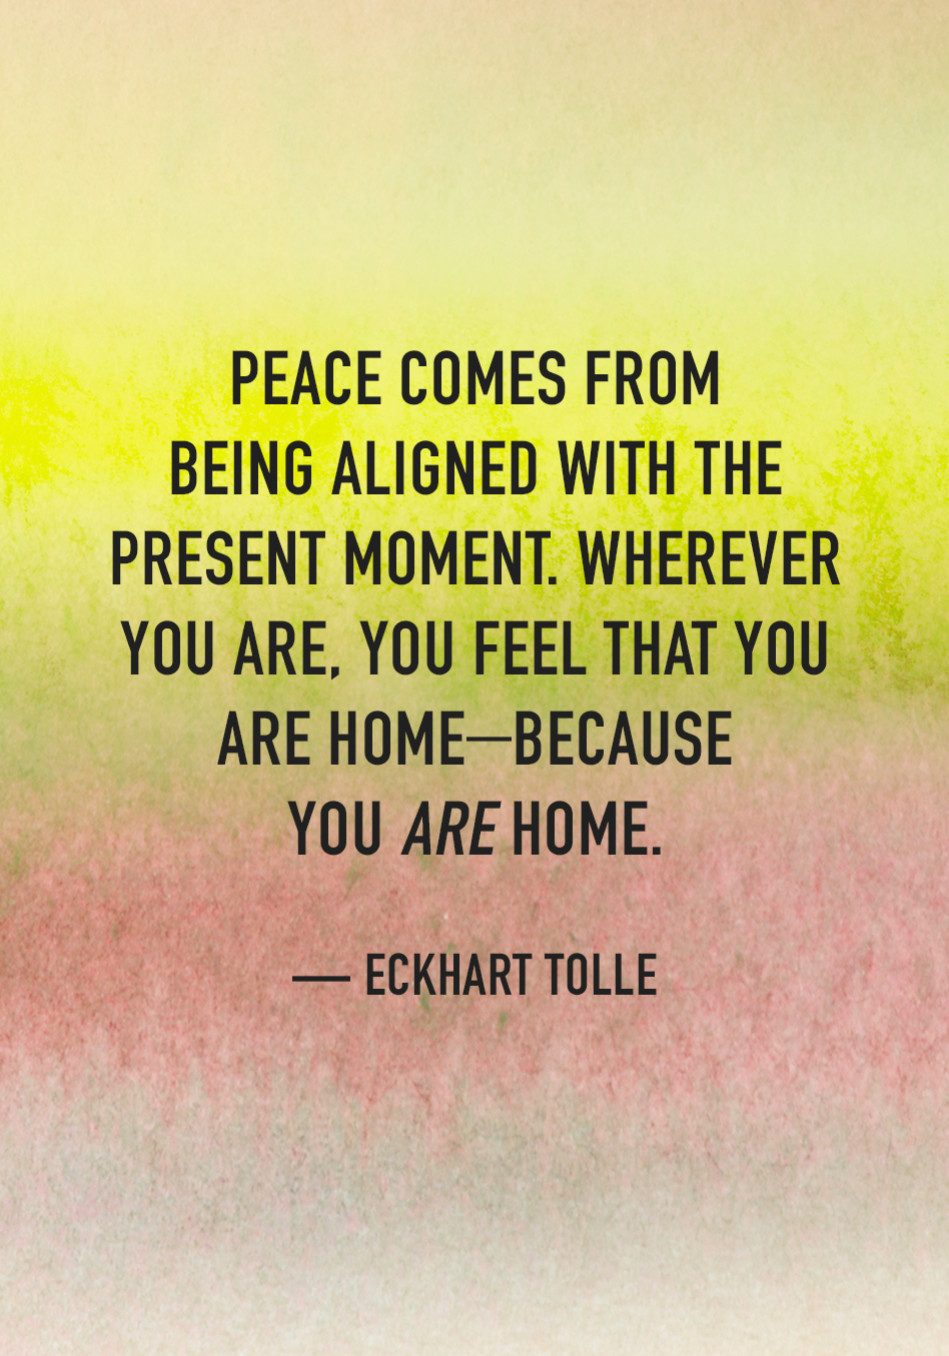 Quotes Eckhart Tolle: Eckhart Tolle's Guide To Transforming Your Life